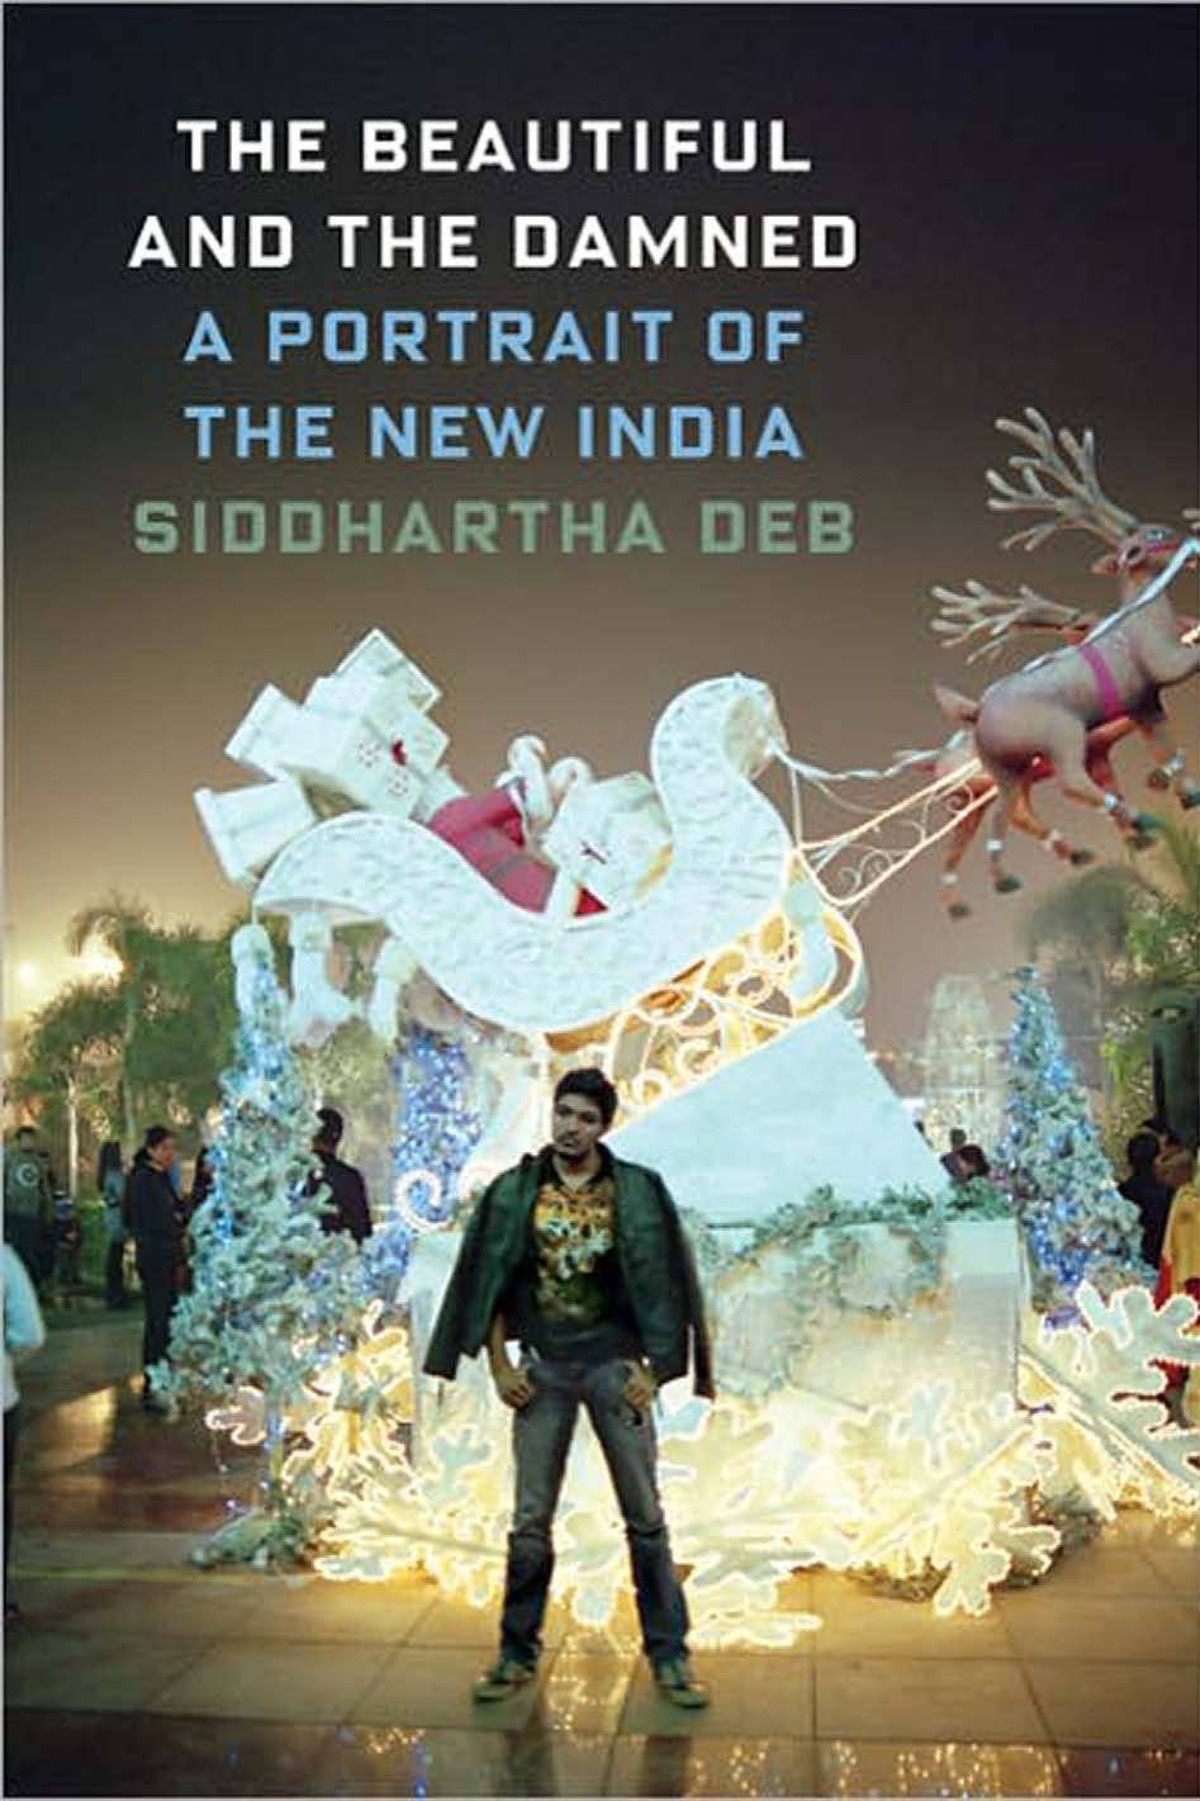 THE BEAUTIFUL AND THE DAMNED A Portrait of the New India By Siddhartha Deb (Bond Street) This work, focusing on five characters in the new India, reads like a sub-continental Great Gatsby. Deb has been compared to V.S. Naipaul, but his voice is unique, more honest, a gaze refreshingly different. The invisible aspects of globalization are starkly revealed, as is the plight of India's dispossessed. – Jaspreet Singh